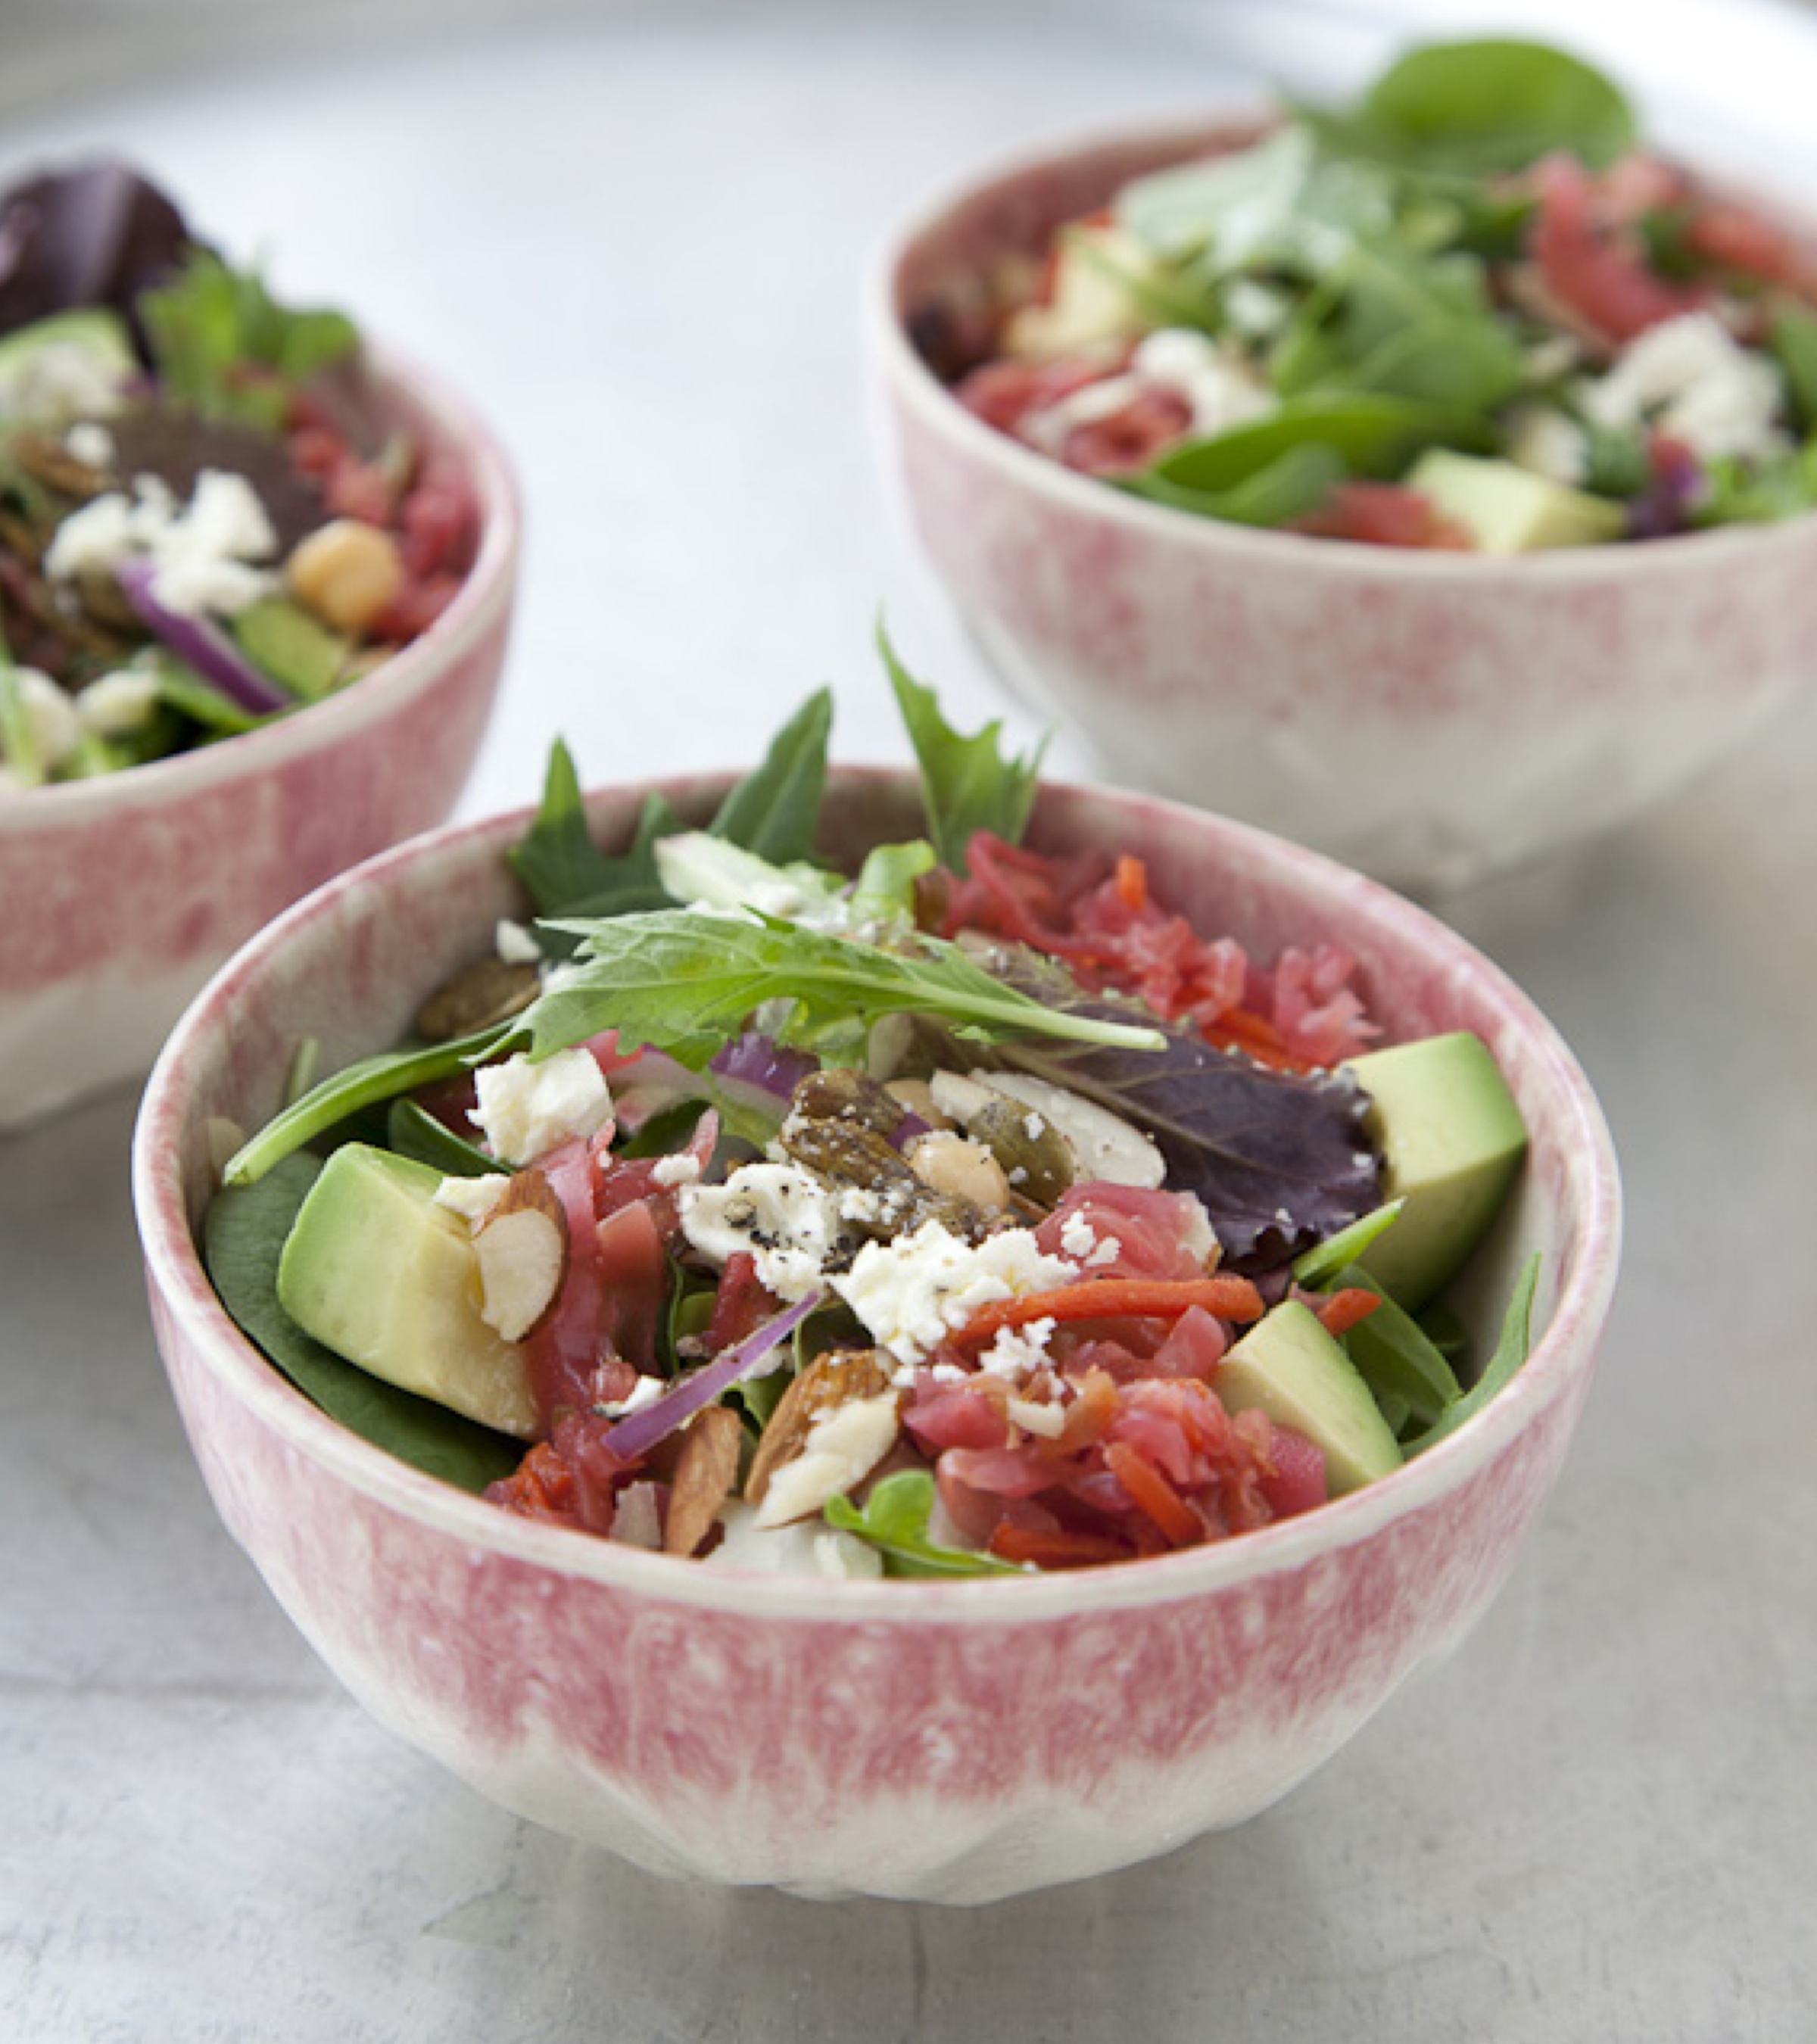 PowerKraut Salad, Photography by Charity Burggraaf